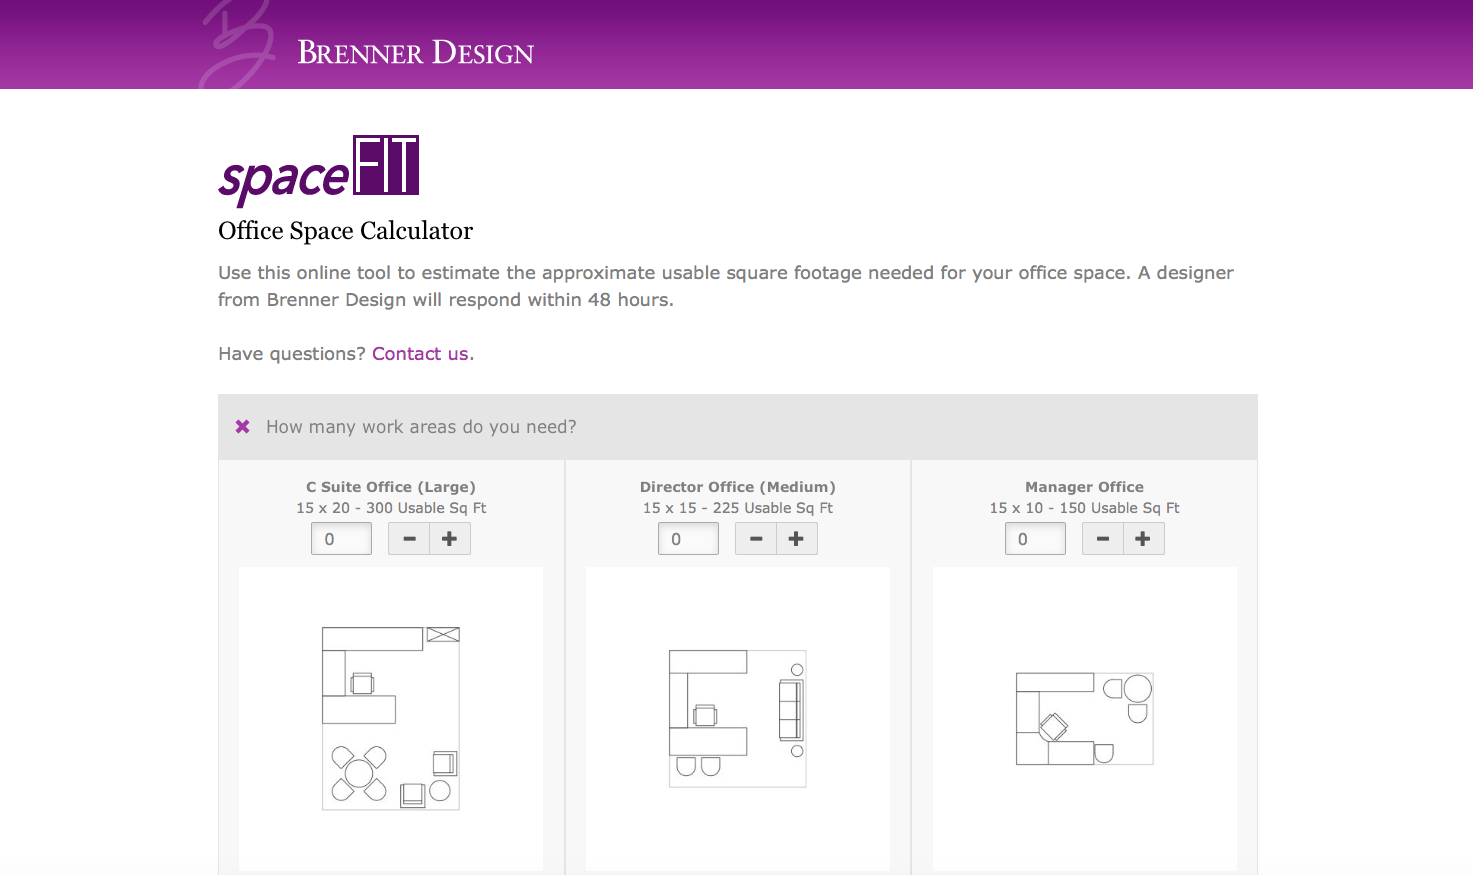 Brenner design launches innovative office space planning tool for Office design tool